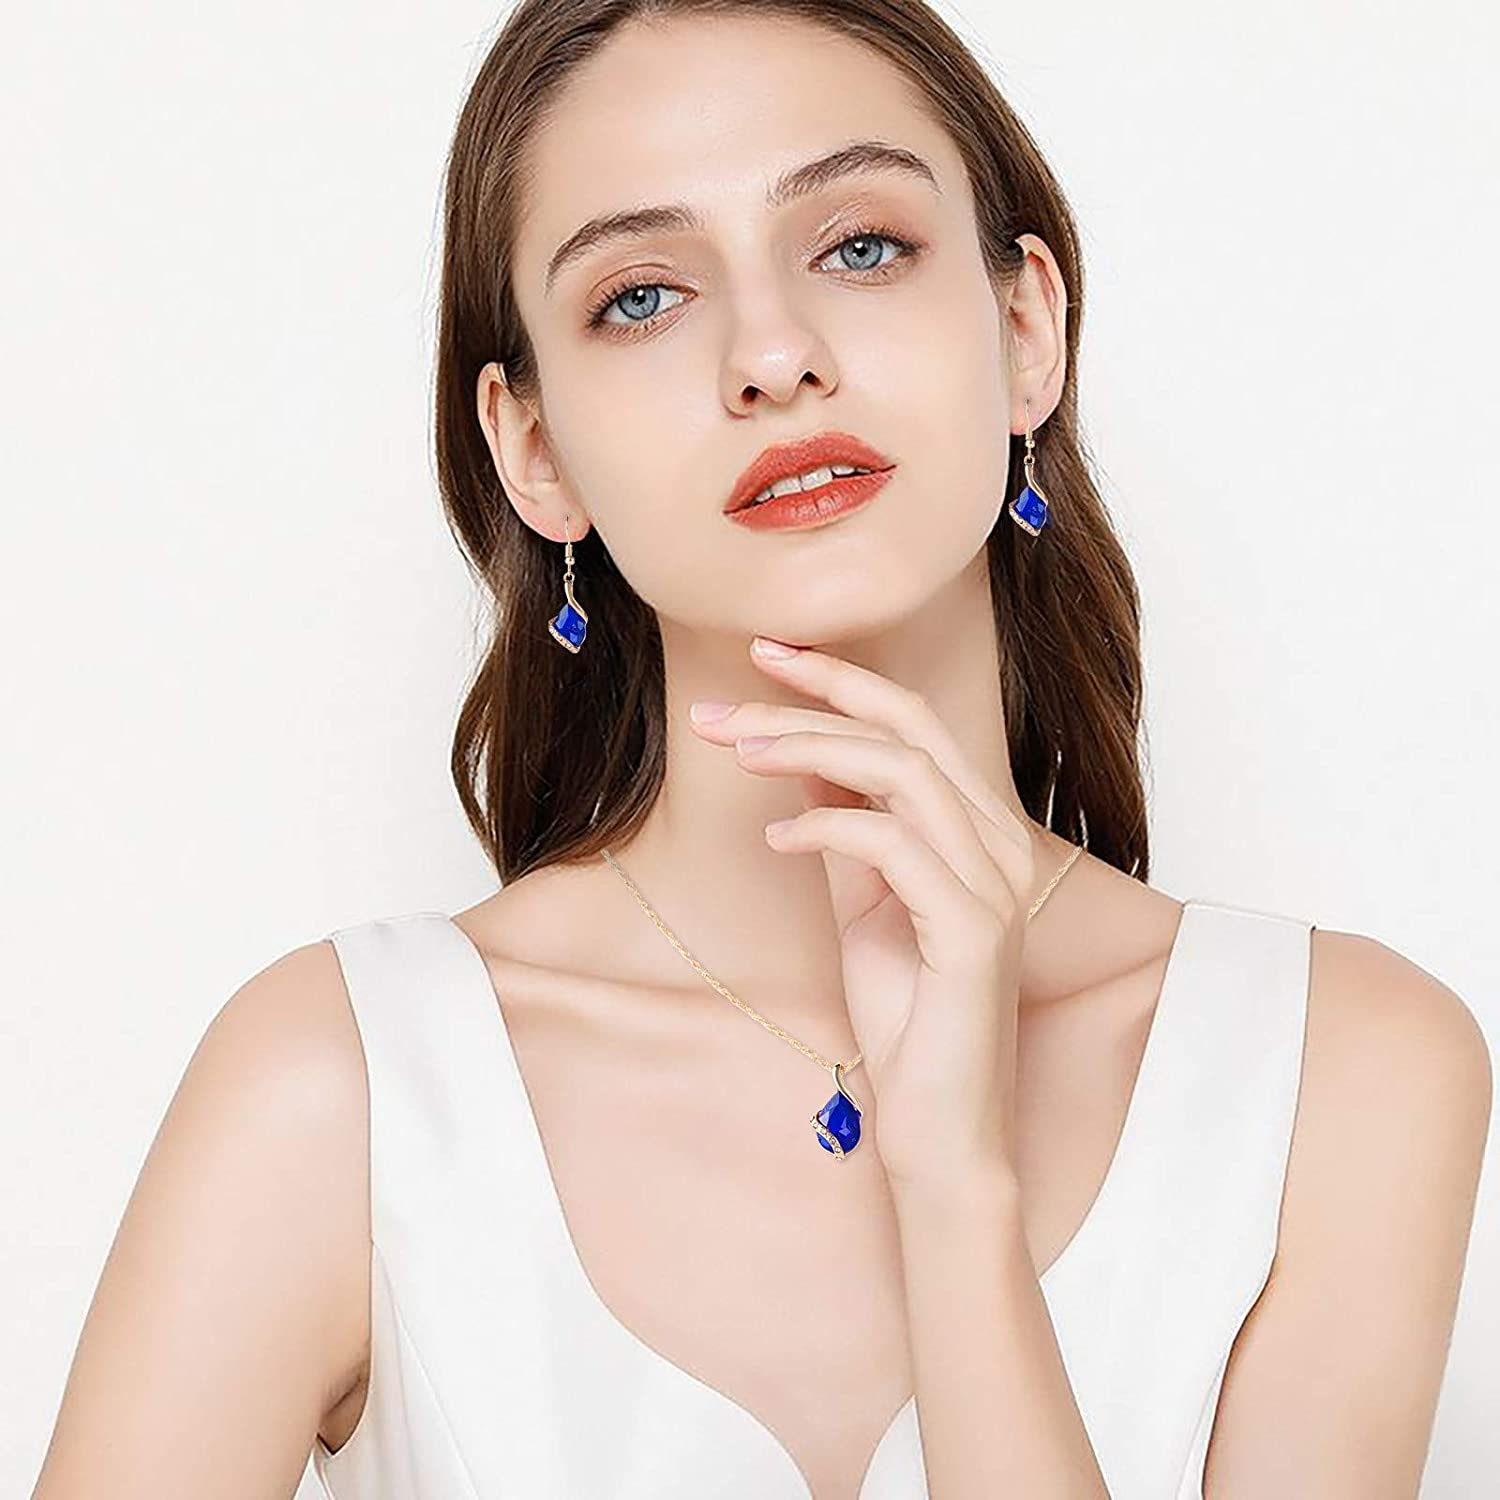 Women's Necklace Earrings Set, Simple Temperament Clavicle Chain Love Diamond Necklace Birthday Anniversary Gifts Jewelry for Women Wife Girlfriend Daughter Mom